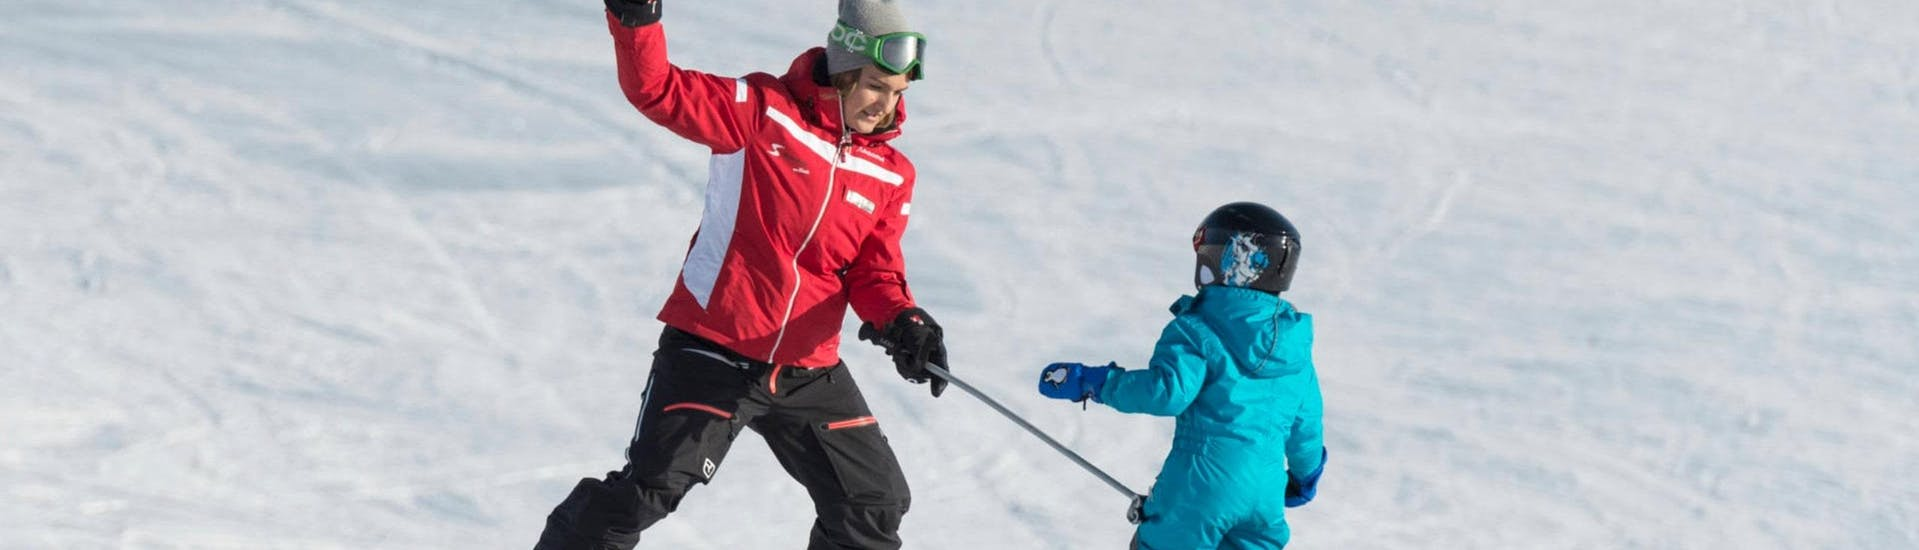 A ski instructor fom Skischule Schwarzenberg am Bödele is practicing some basic skiing techniques with a young child during their private ski lessons for kids from 3.5 y.